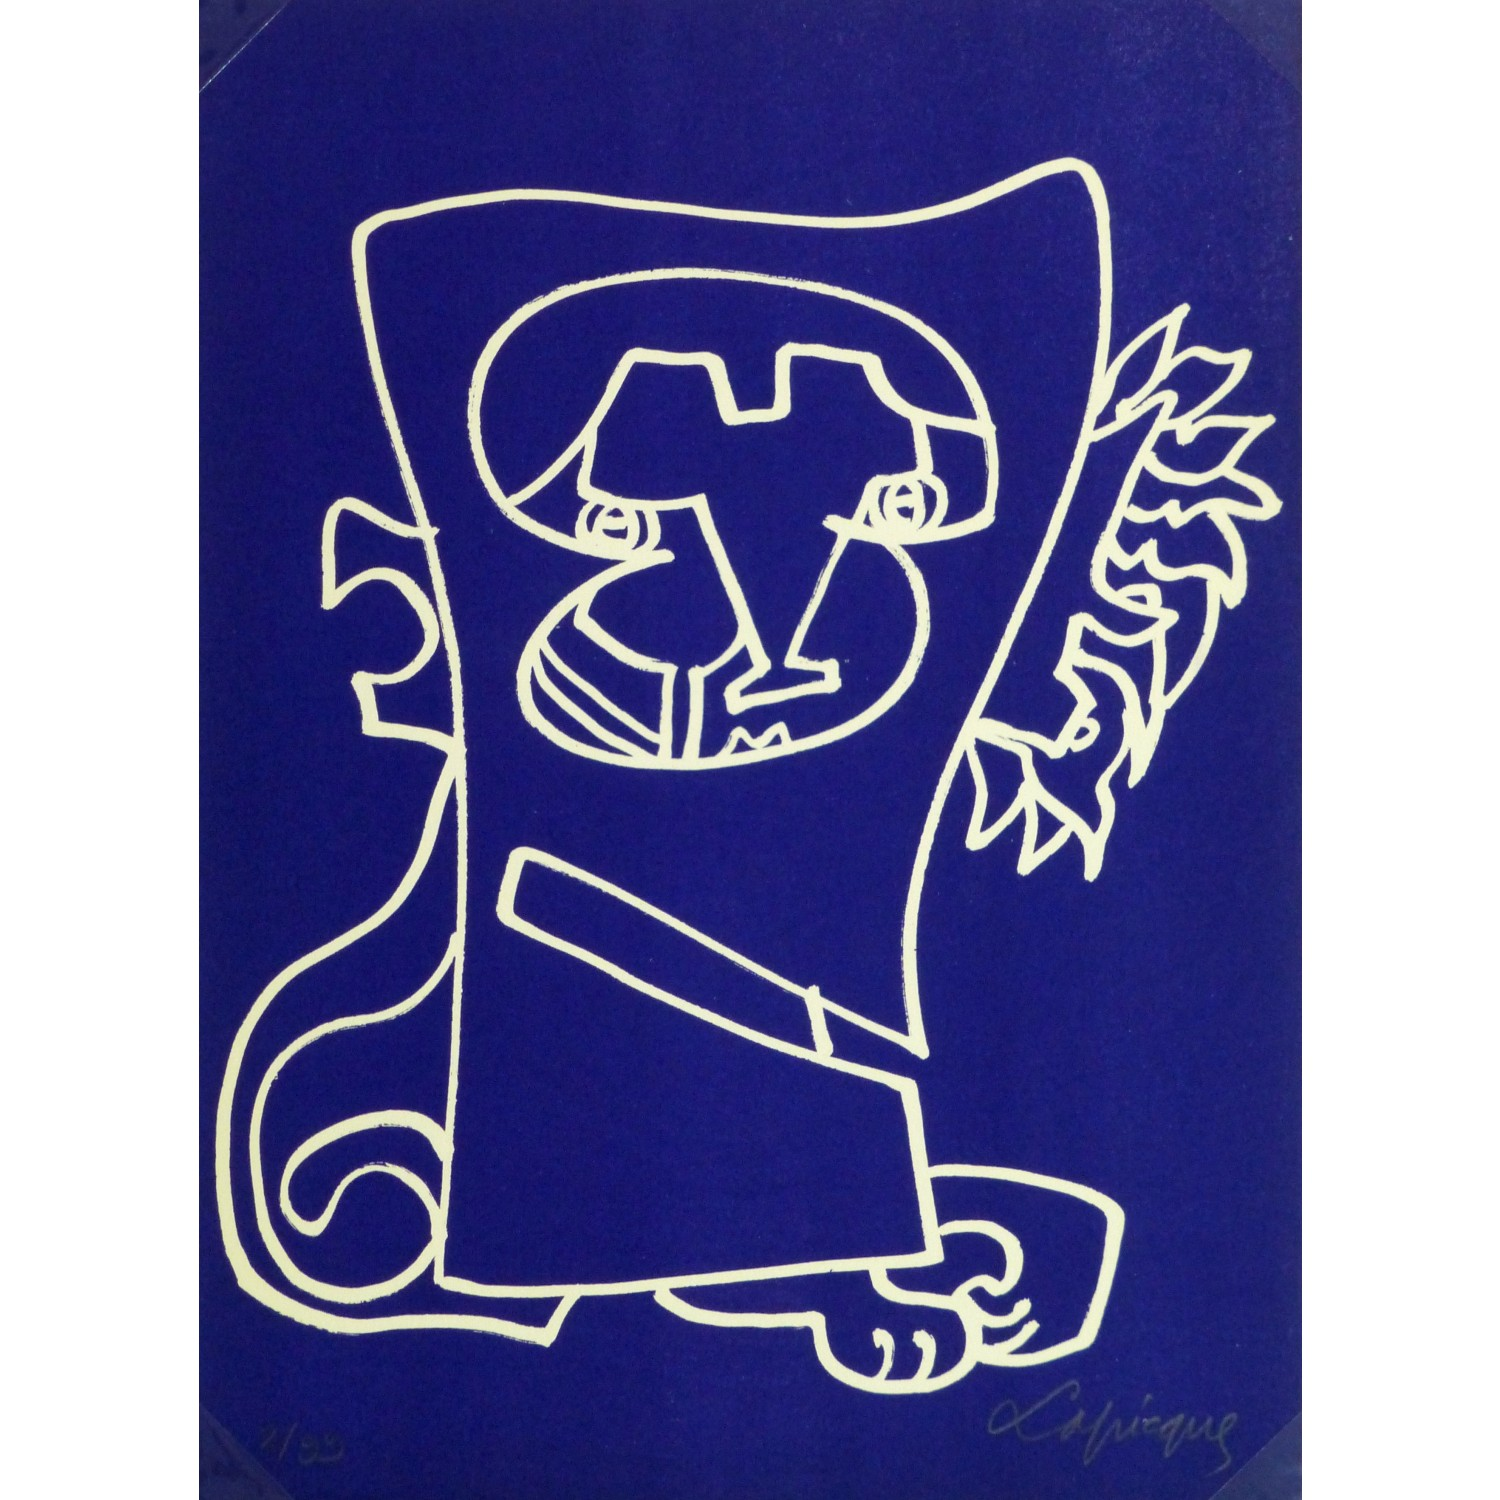 Abstract Lithograph by Charles Lapicque L'Ambition 9148m